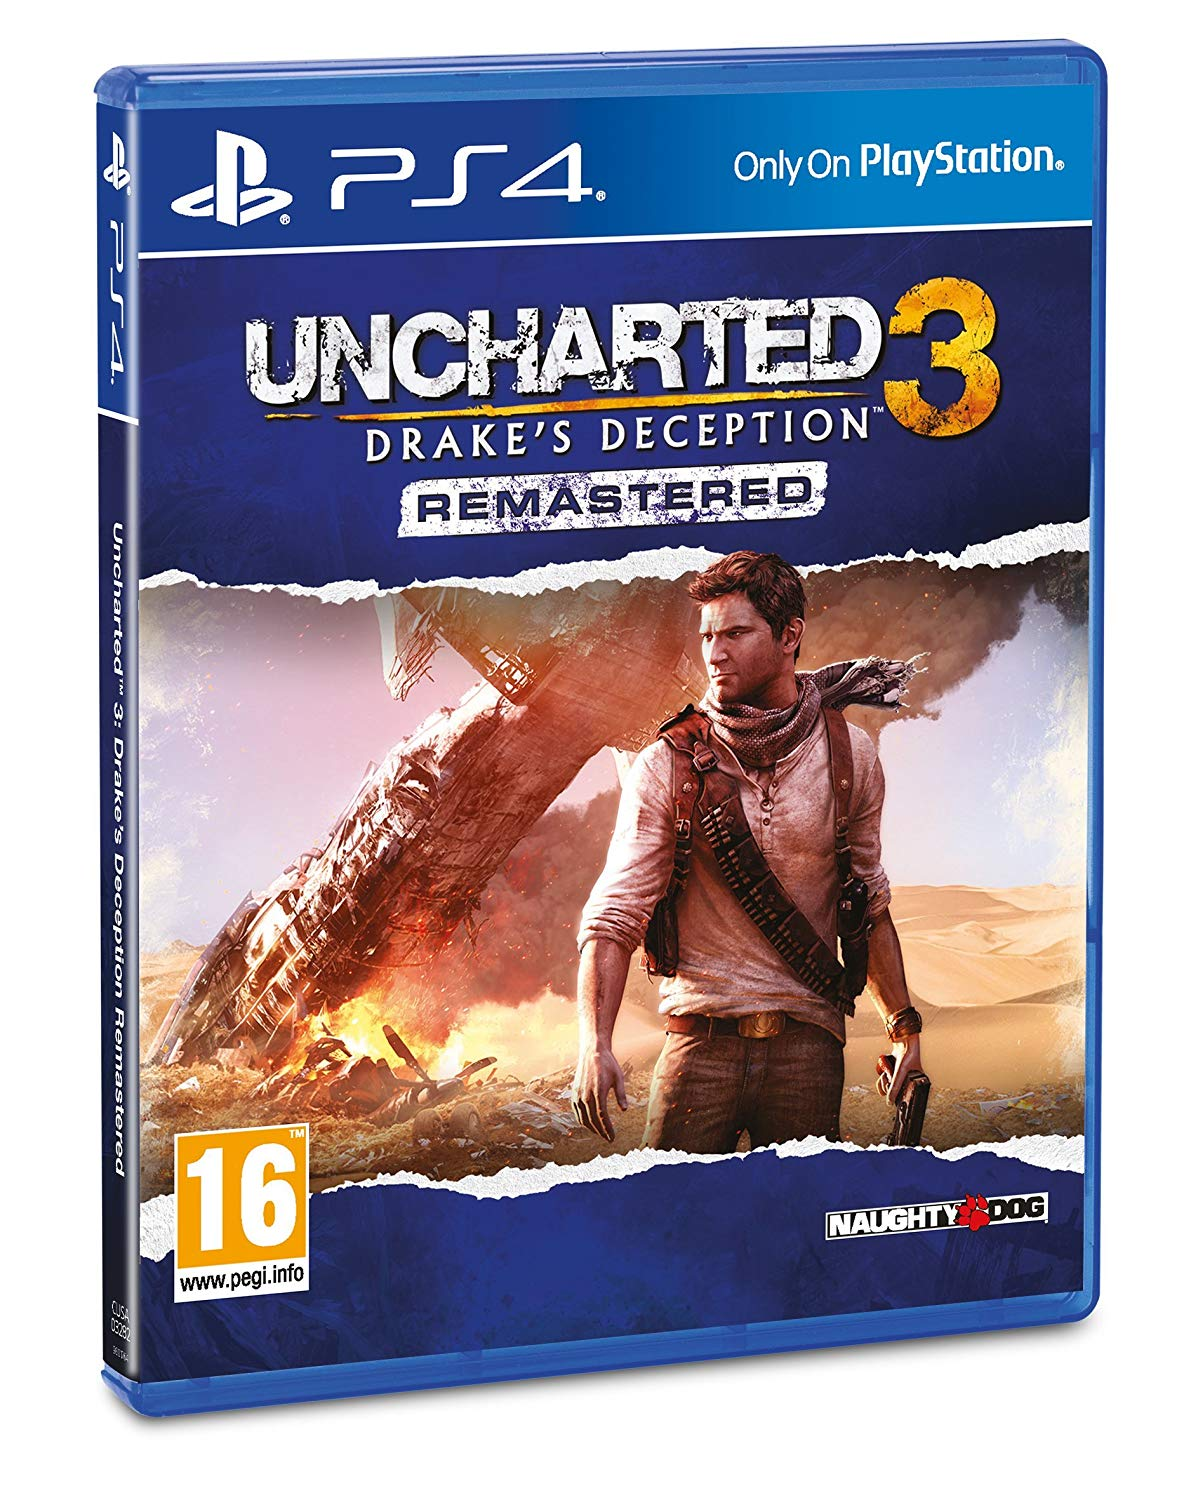 UNCHARTED 3: DRAKE'S DECEPTION REMASTERED - PS4